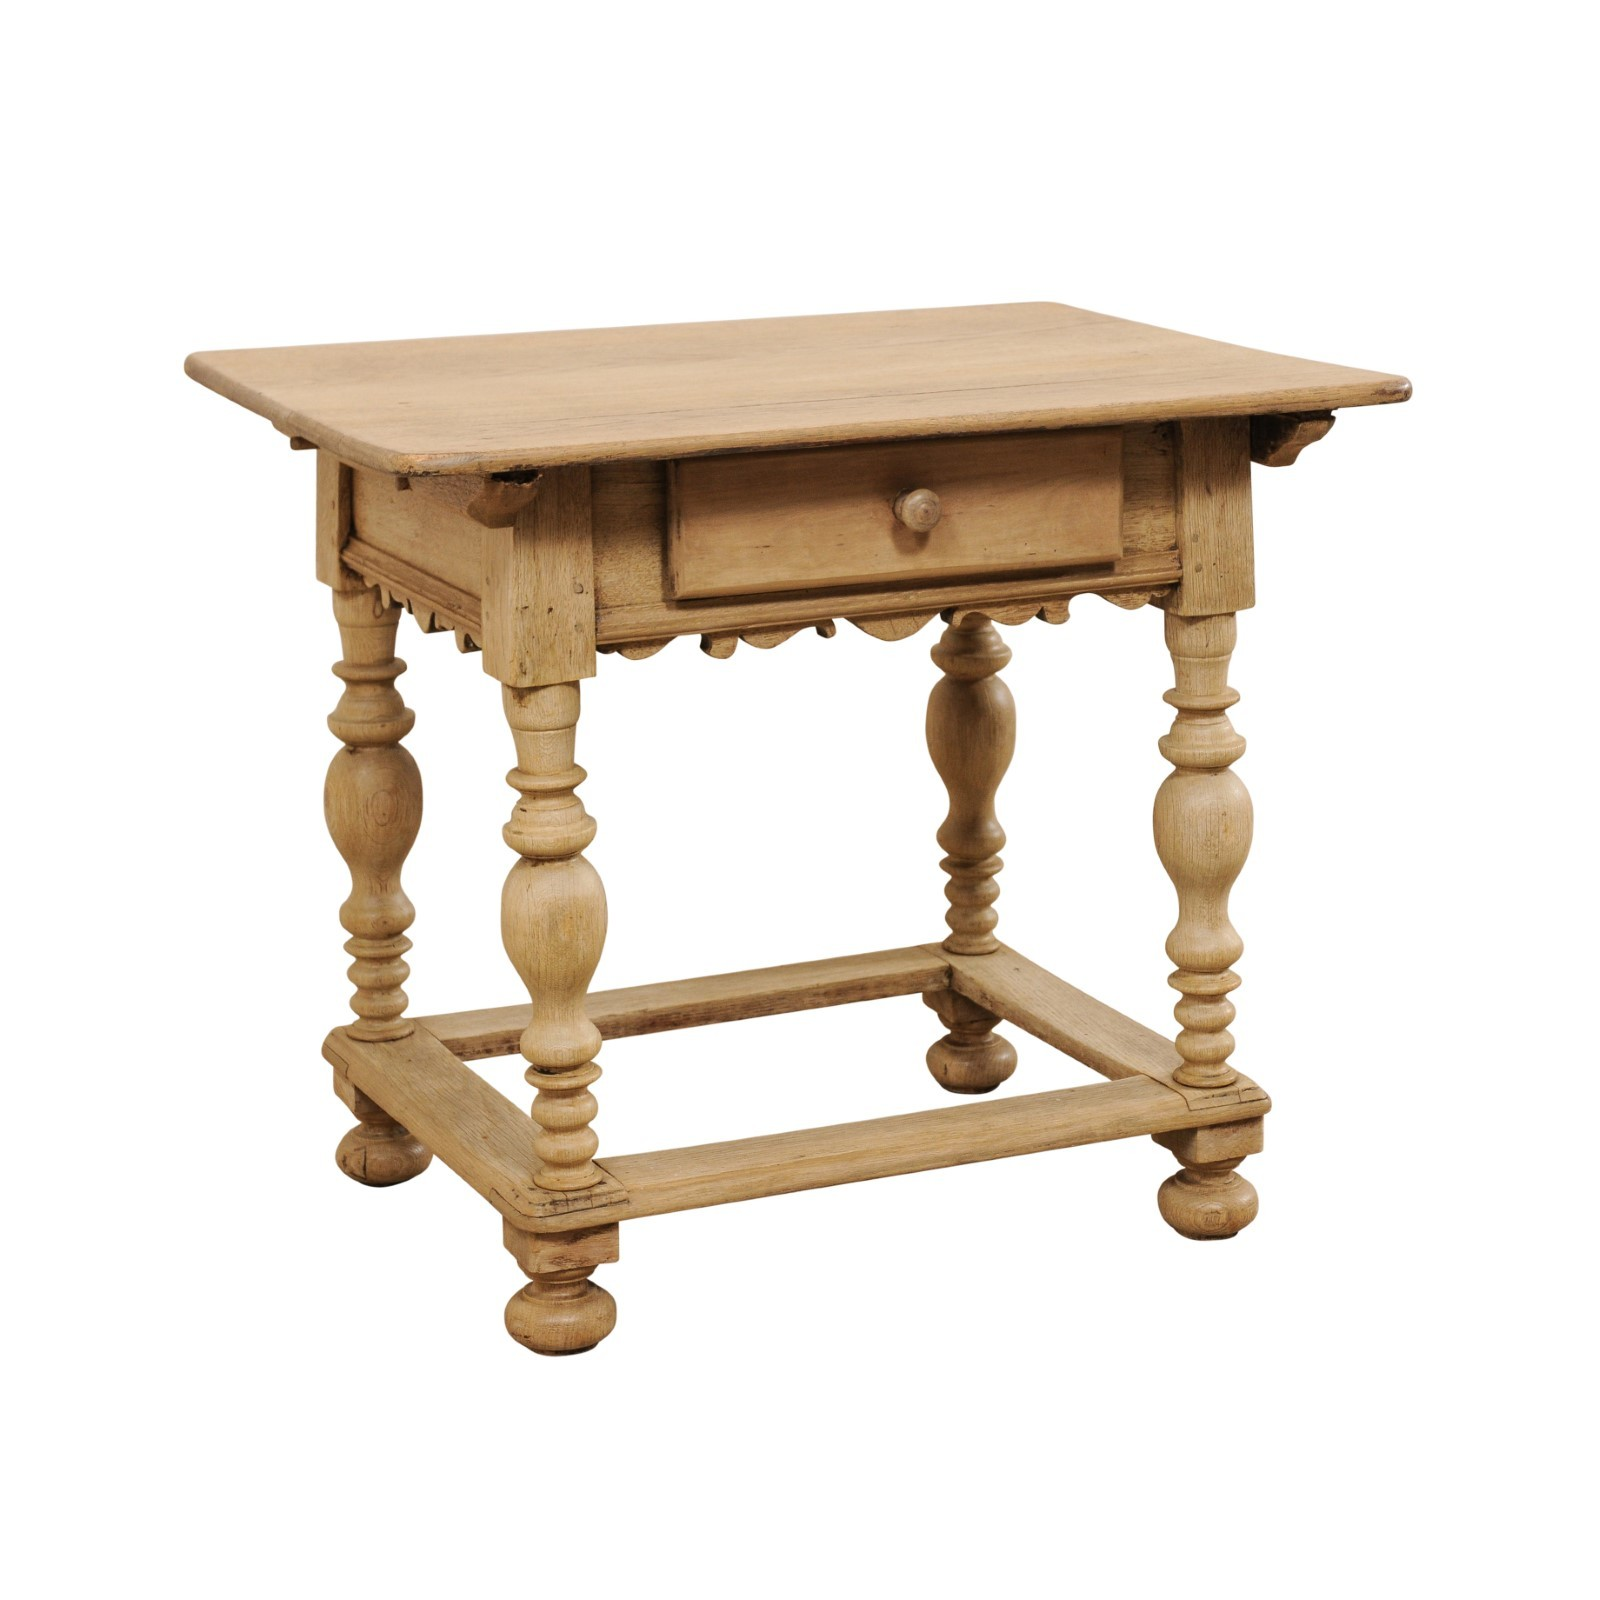 Swedish Period Baroque Bleached Table